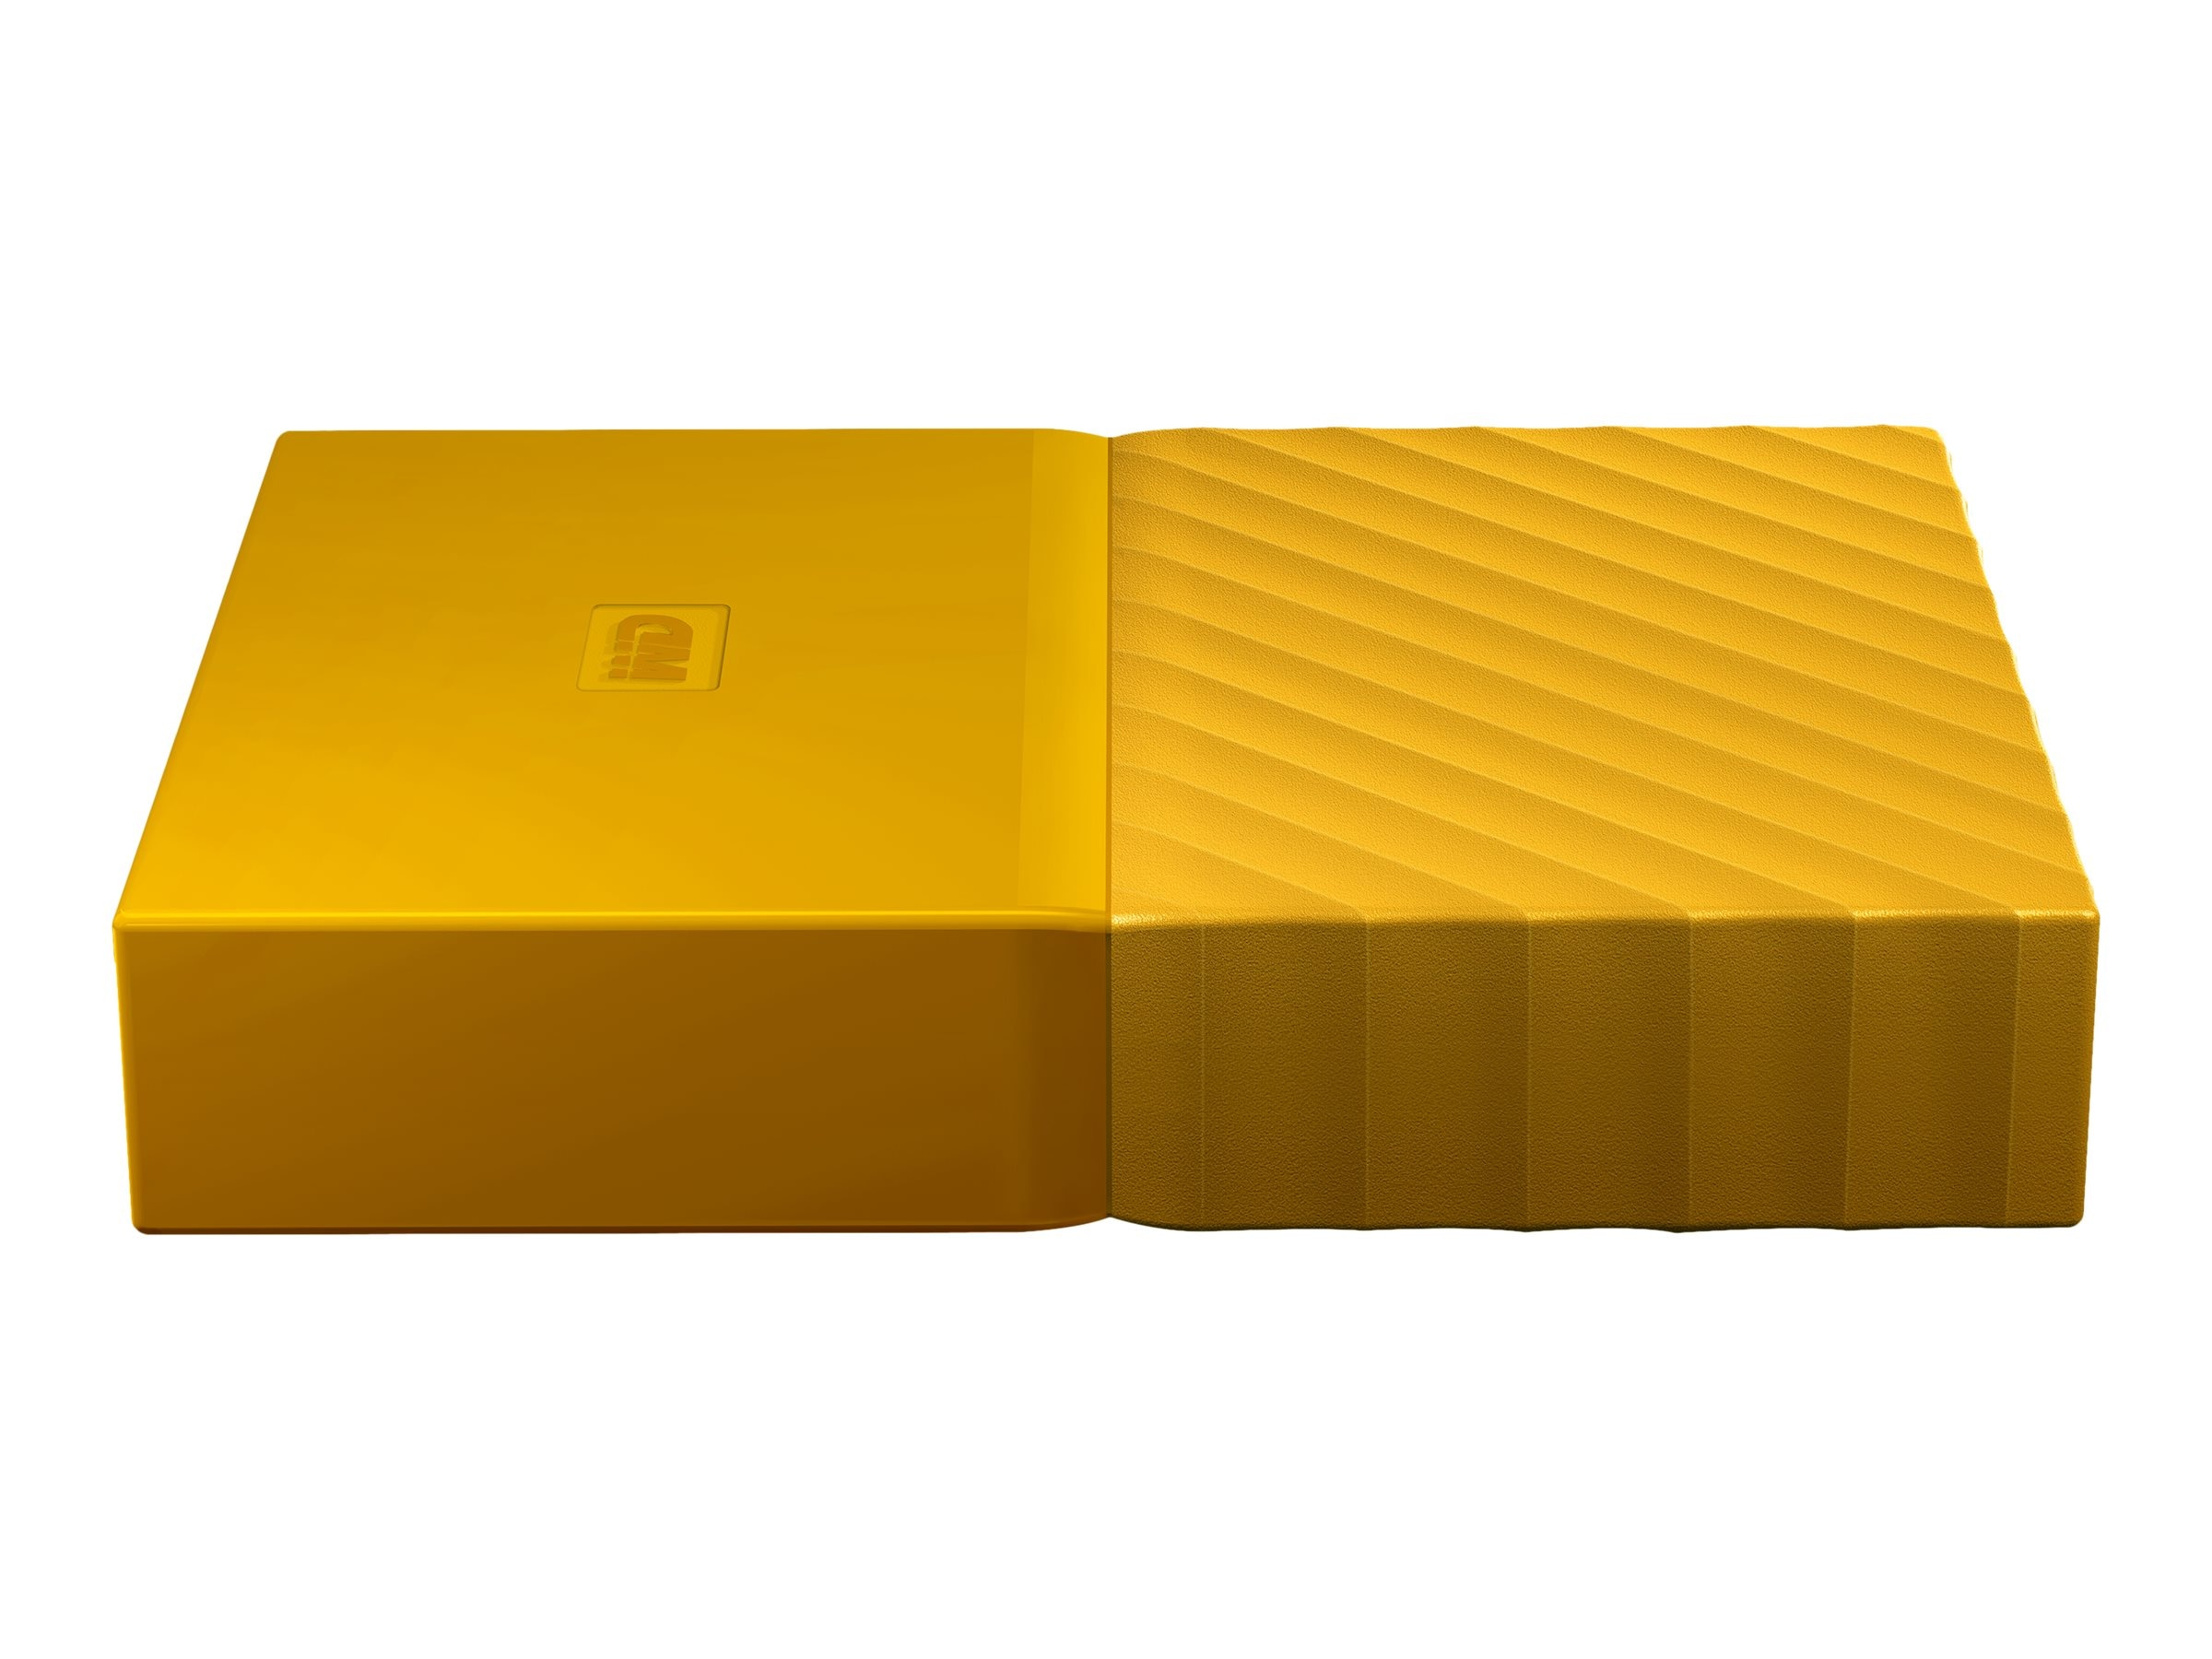 WD 2TB My Passport USB 3.0 Portable Hard Drive - Yellow, WDBYFT0020BYL-WESN